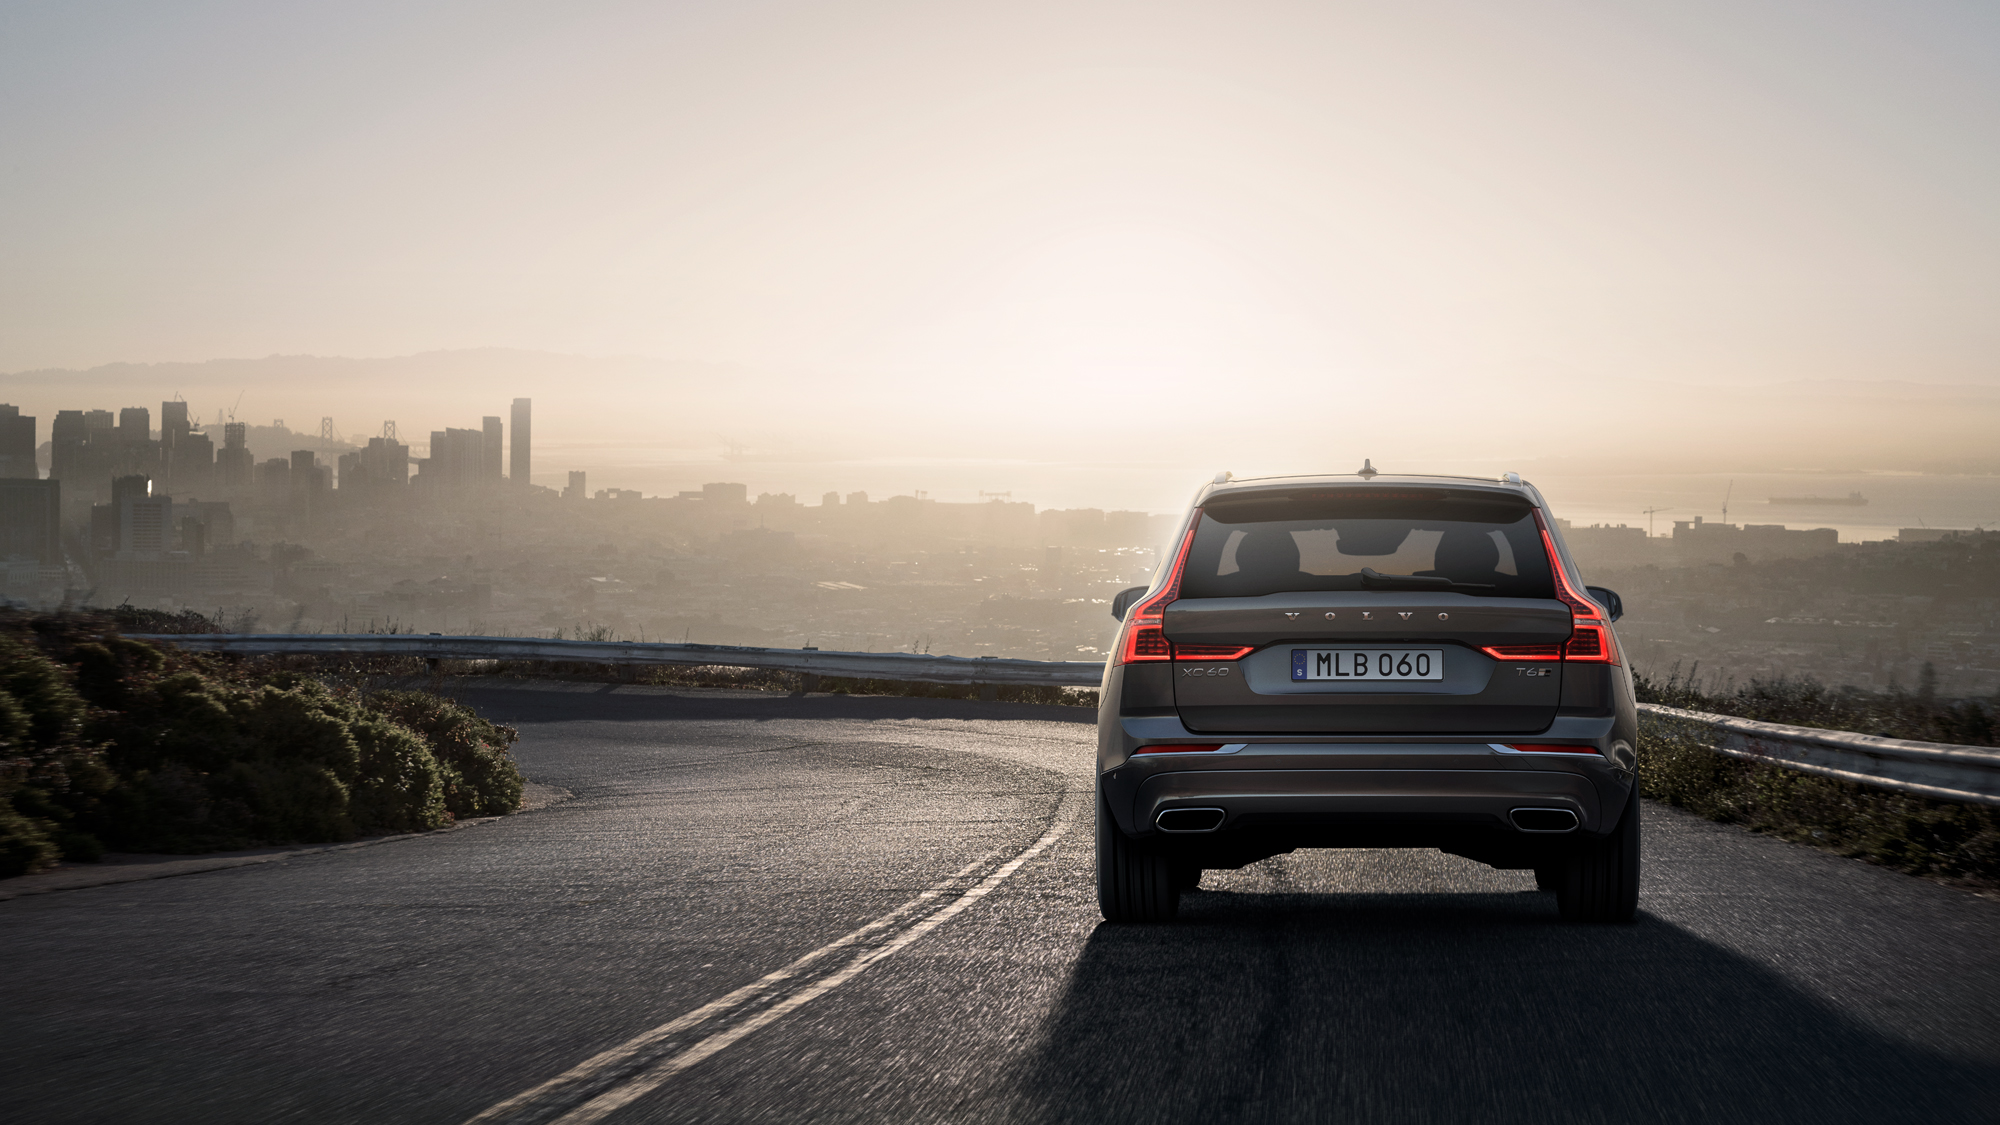 new with volvo in cbu renowned successor long o twin malaysia introduction the car unveiled range engine launches premium of to xc suv sized mid its awaited recently